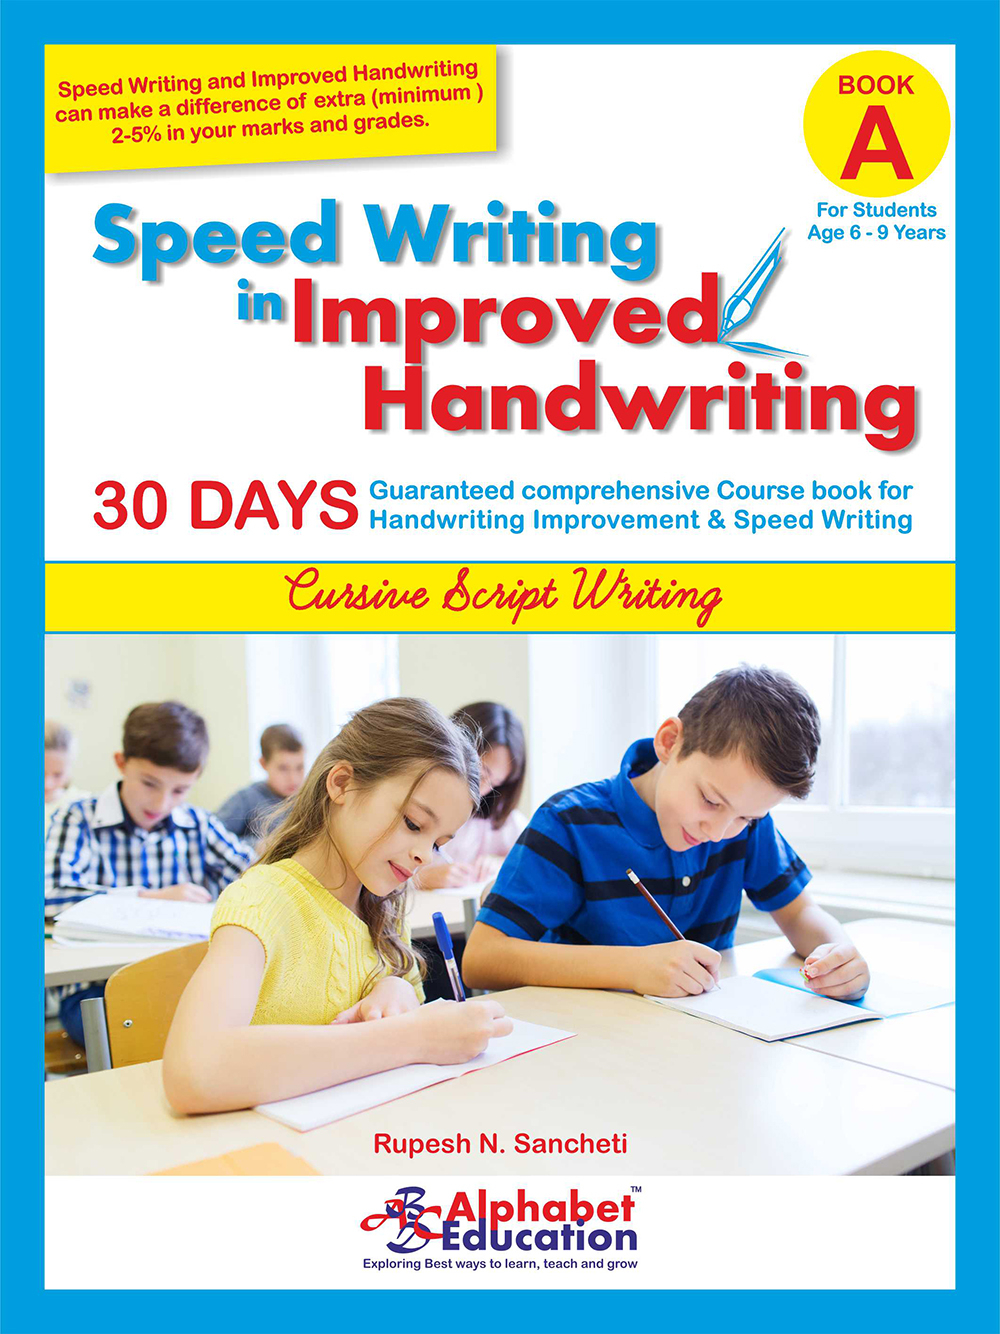 Speed Writing In Improved Handwriting - Cursive Script - Book A (For Age  6-9 Years)